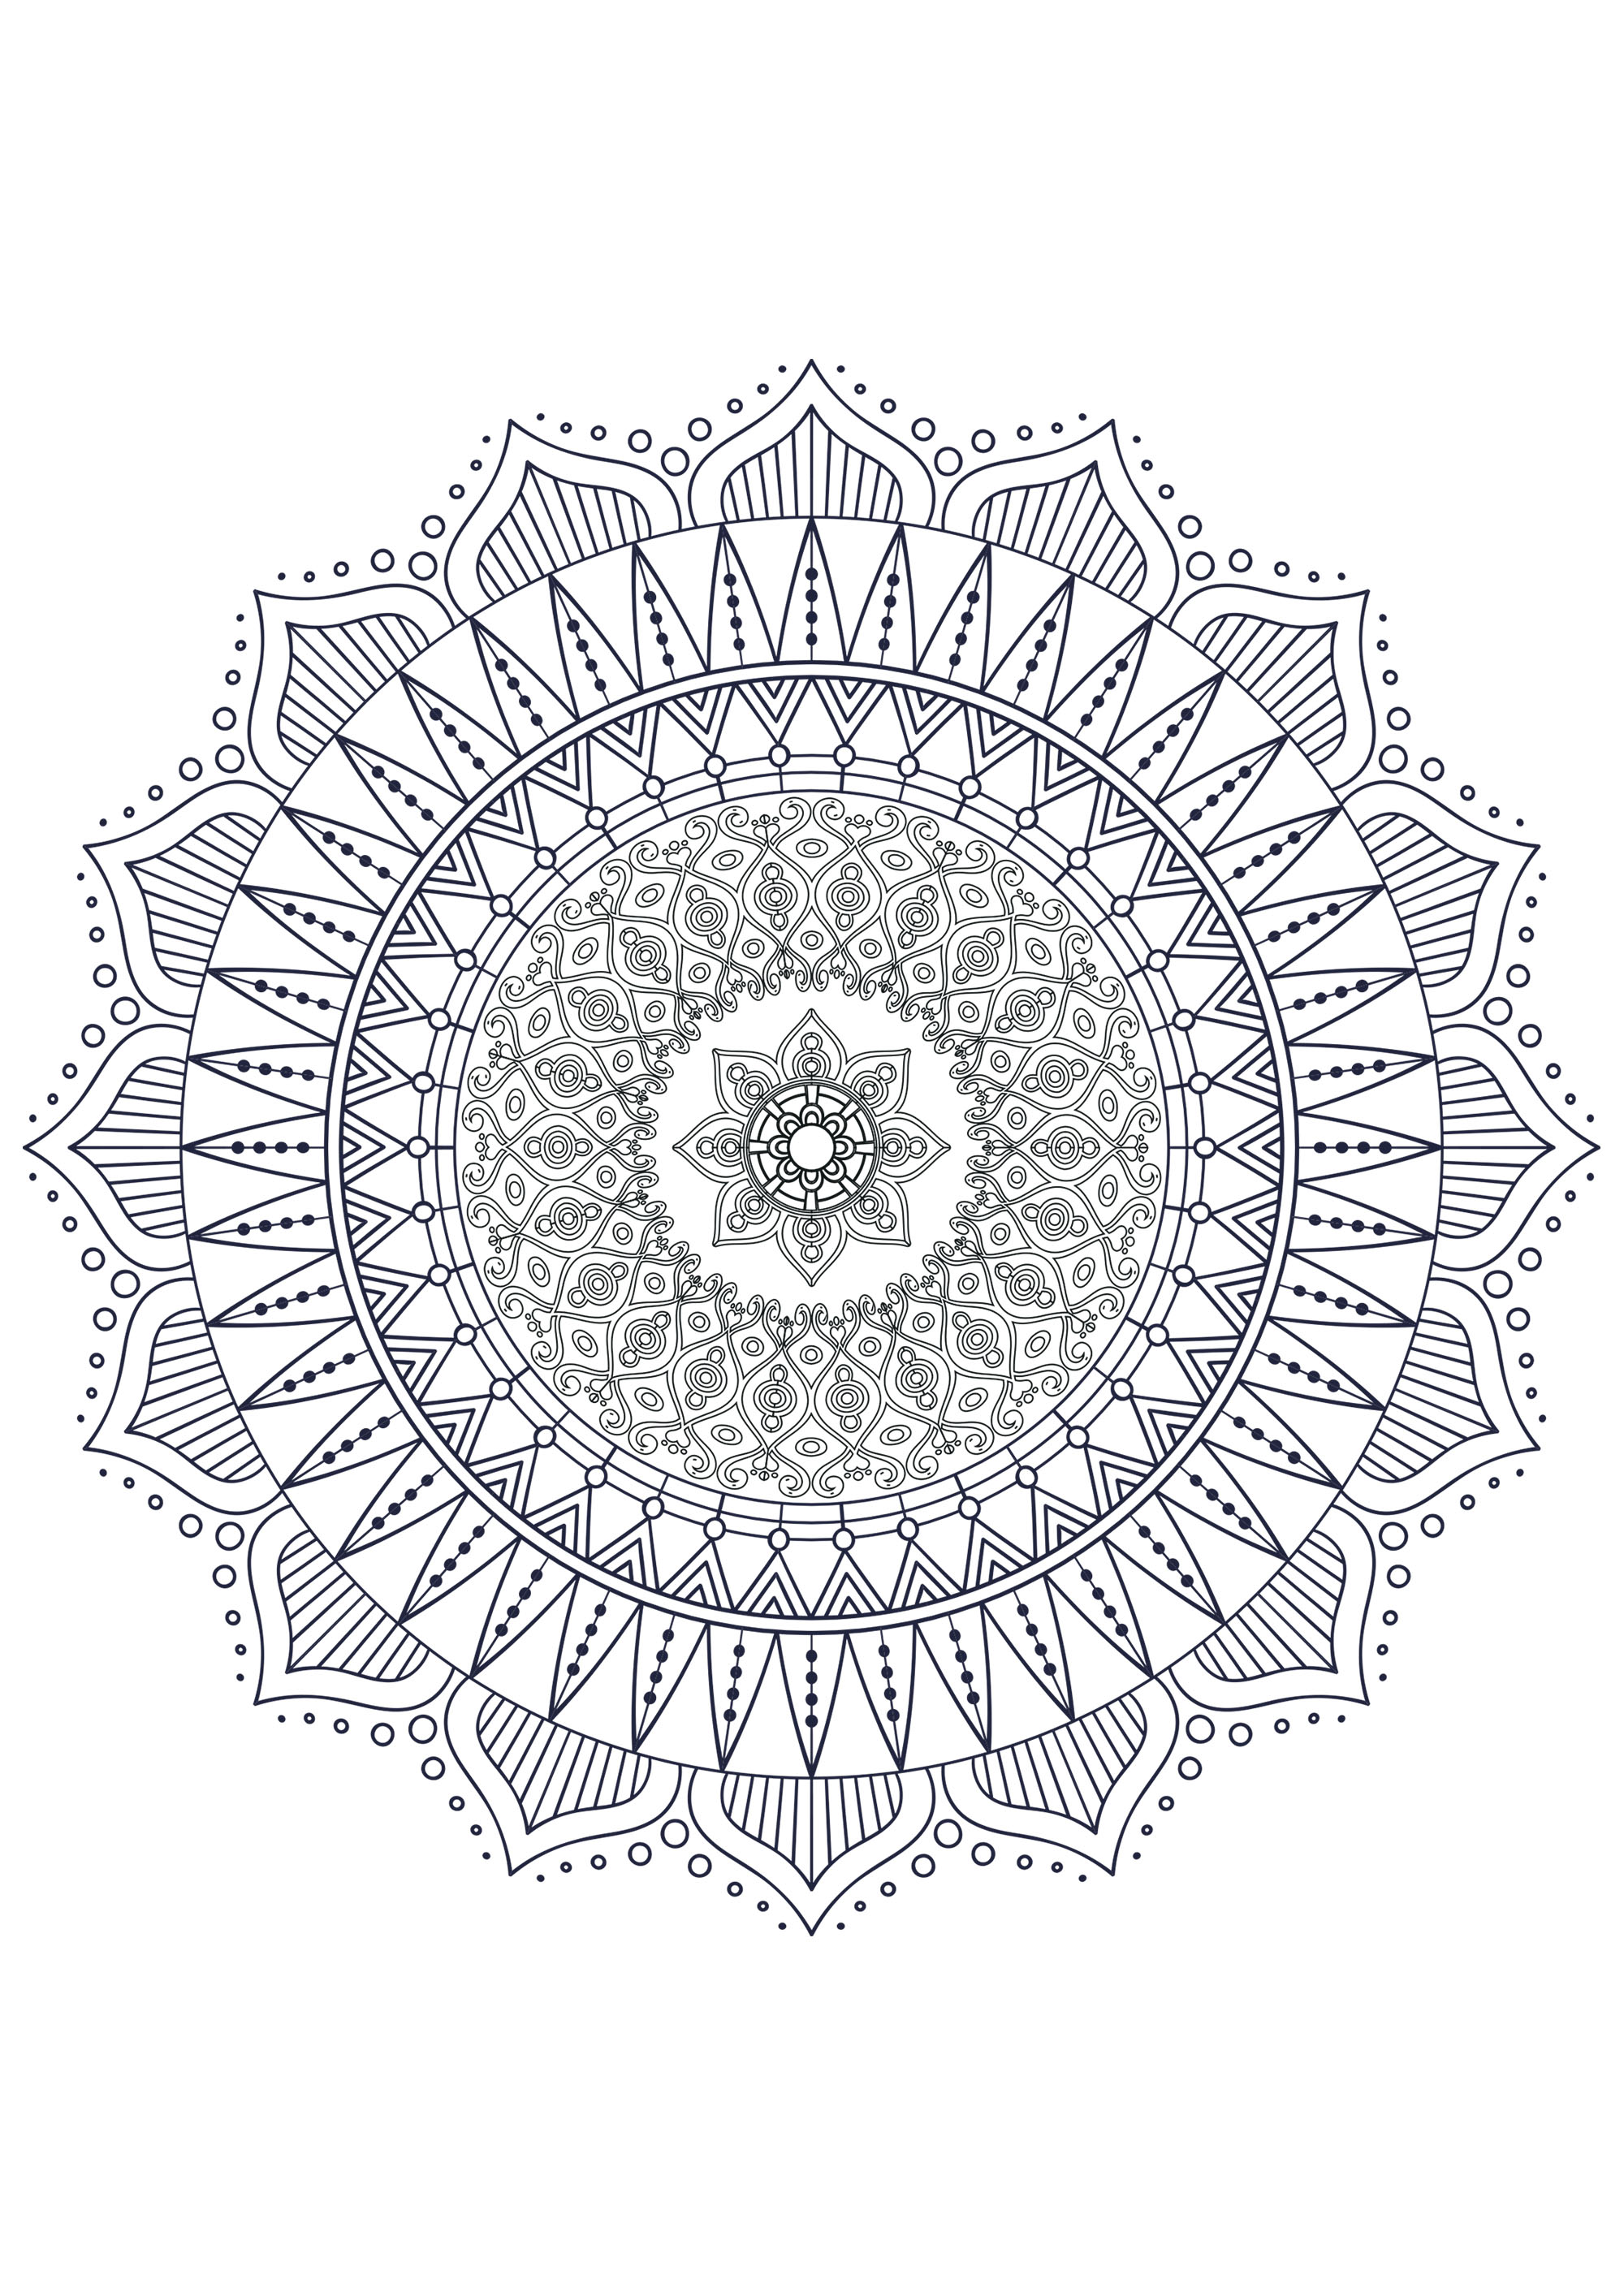 Zen & Anti-Stress Mandala - 7